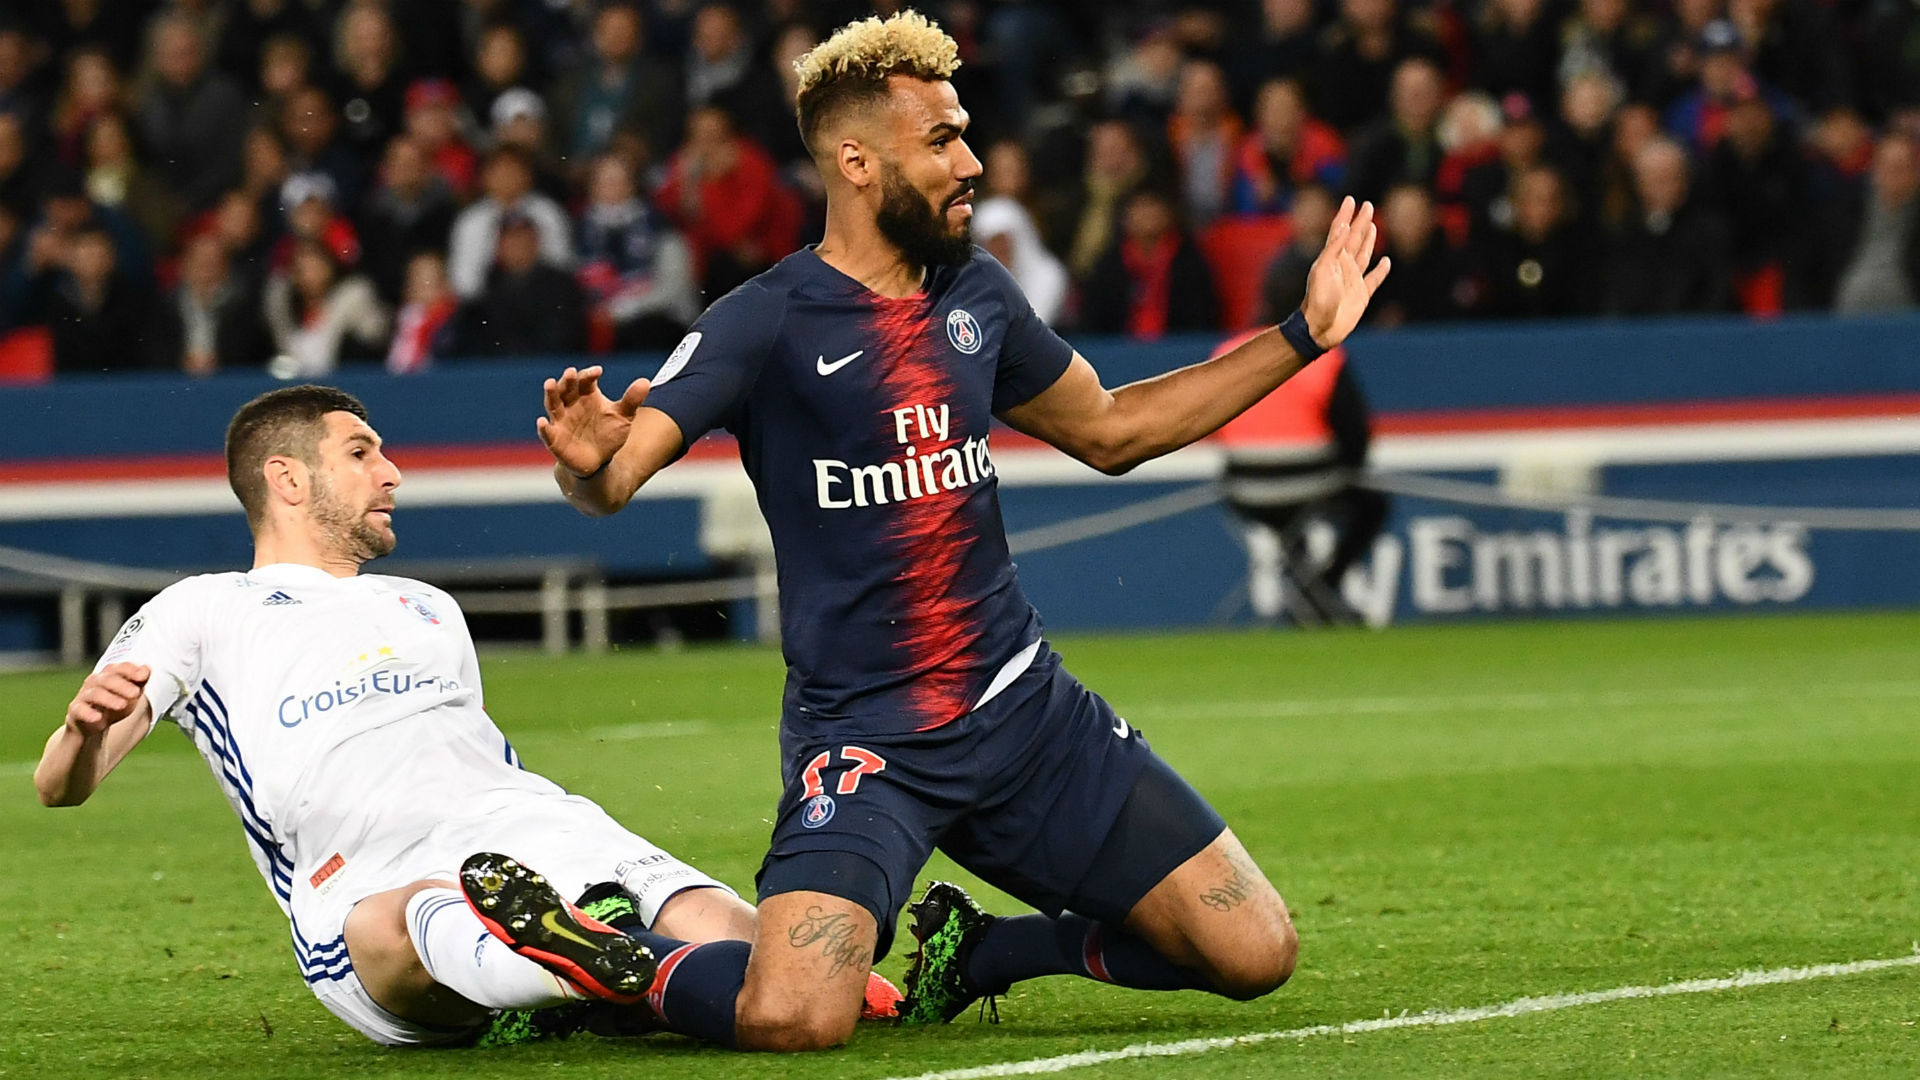 Choupo-Moting prevents PSG scoring with stunning goal-line clearance